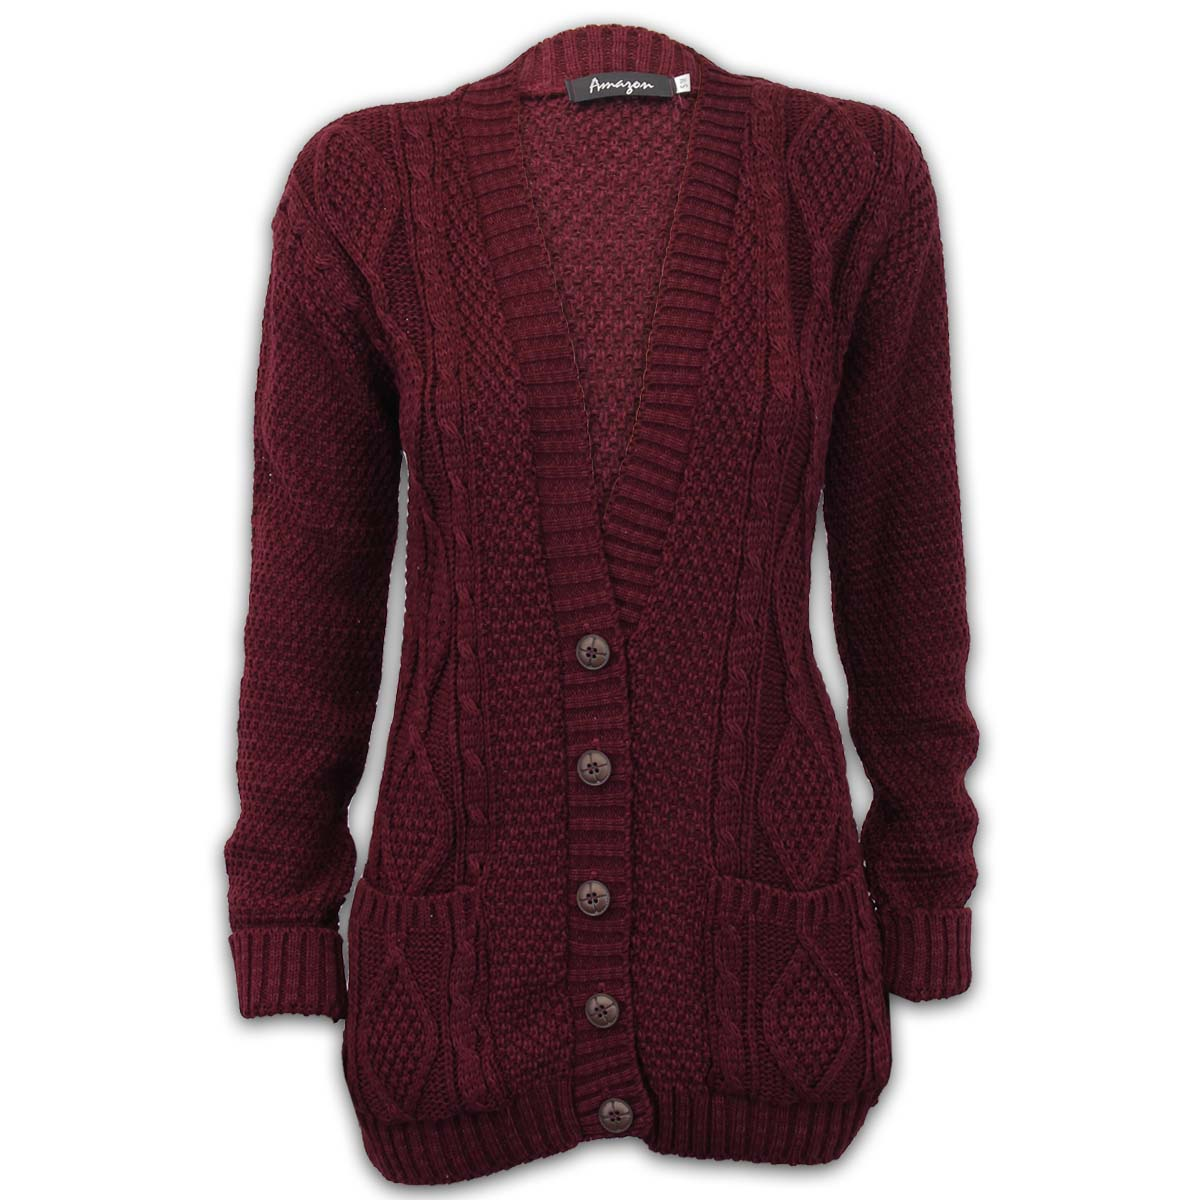 Ladies Cardigans Womens Knitted Jumper Cable Jacquard ...